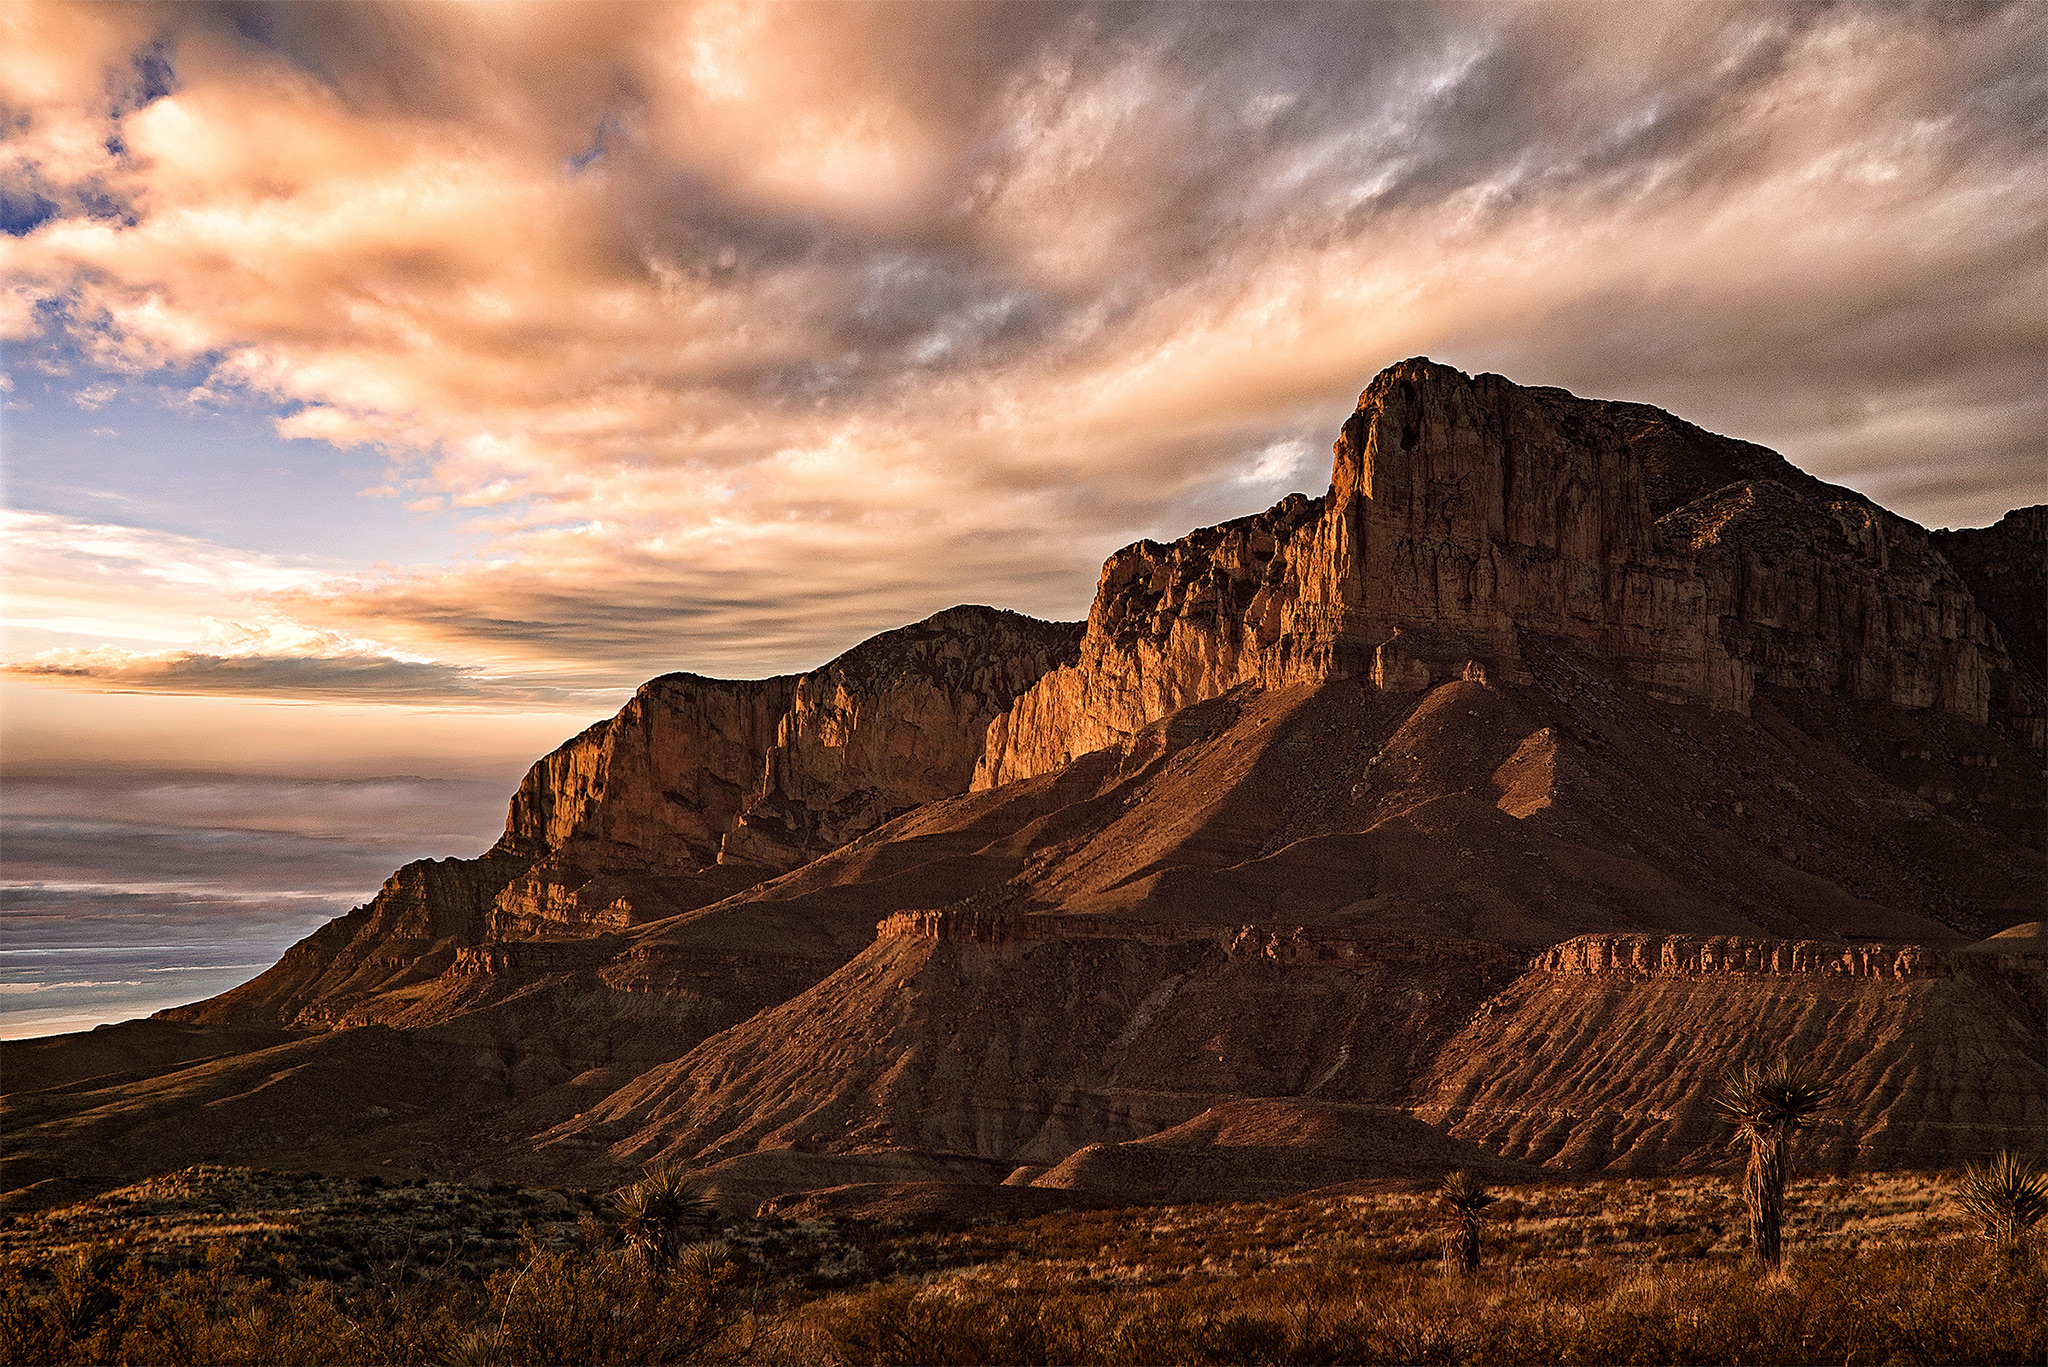 El Capitan Sunset Guadalupe Mountains National Park